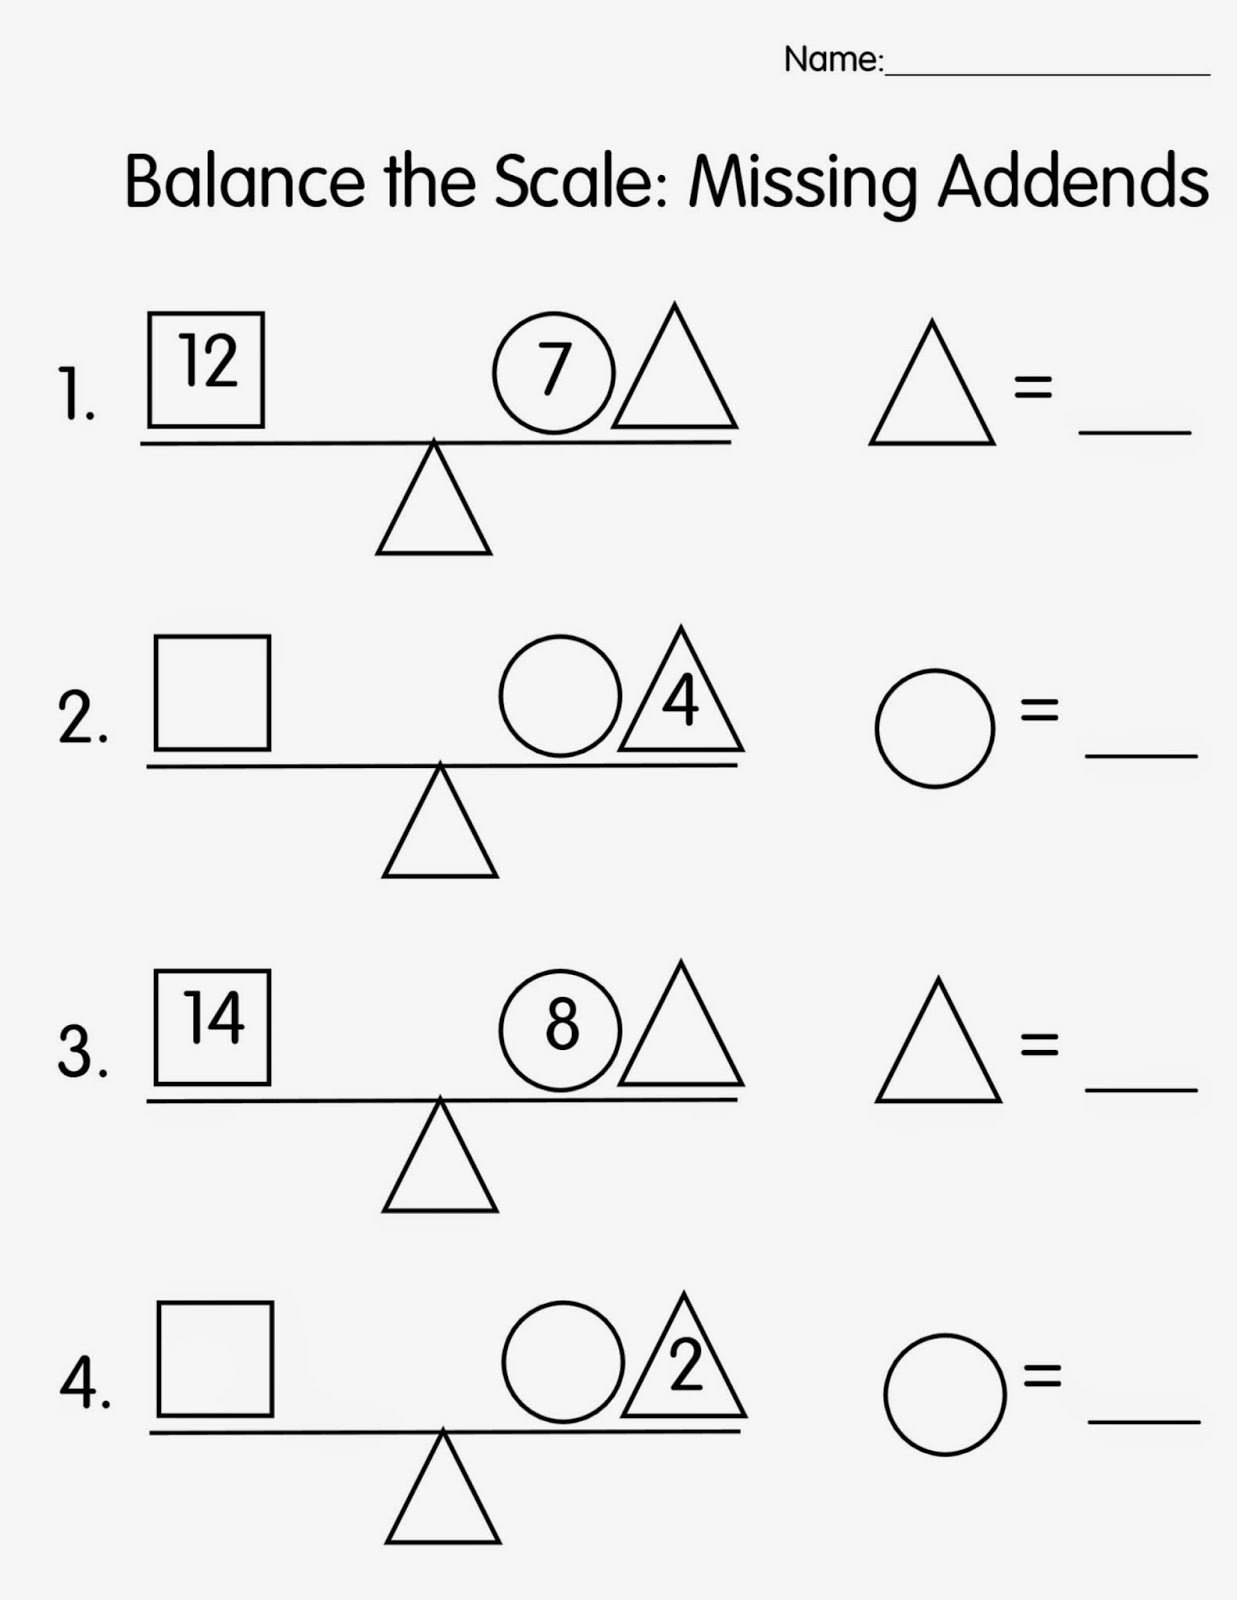 Missing Addends Worksheets First Grade Mrs T S First Grade Class Balance the Scale Missing Addends